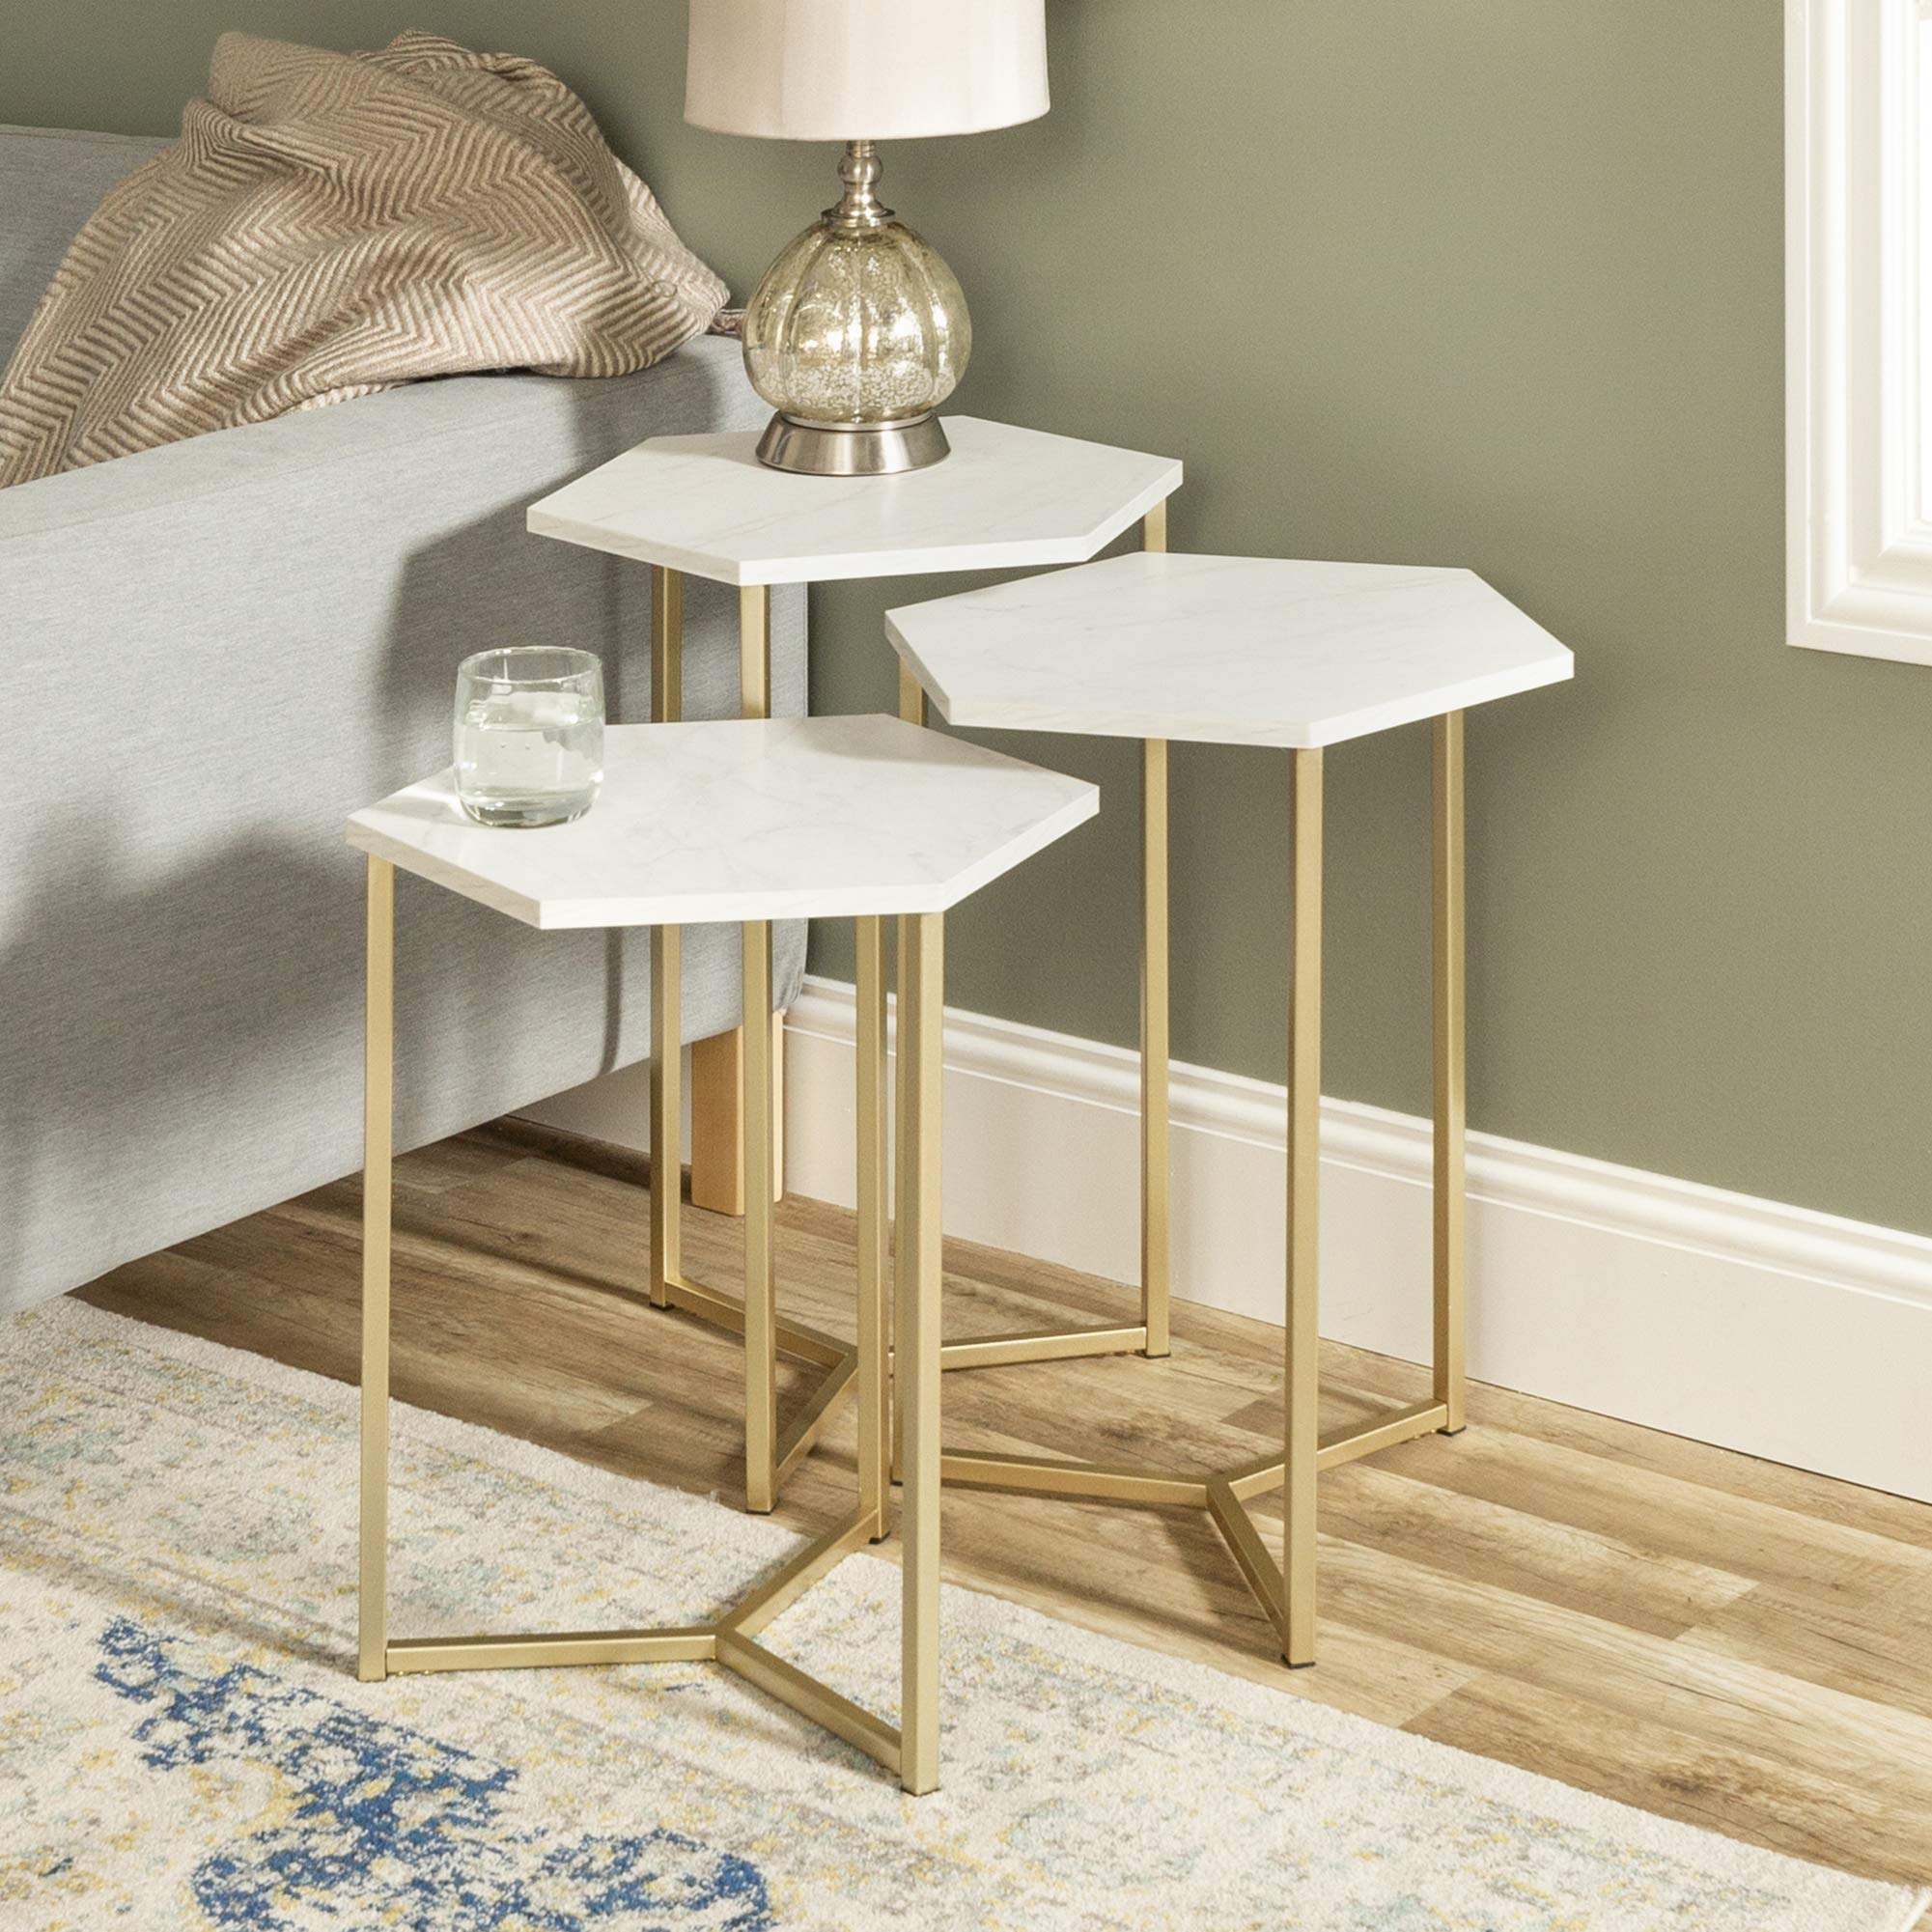 WE Furniture AZF16HEX3WM Modern Hexagon Nesting Side End Table Set Living Room, Set of 3, White Marble, Gold by WE Furniture